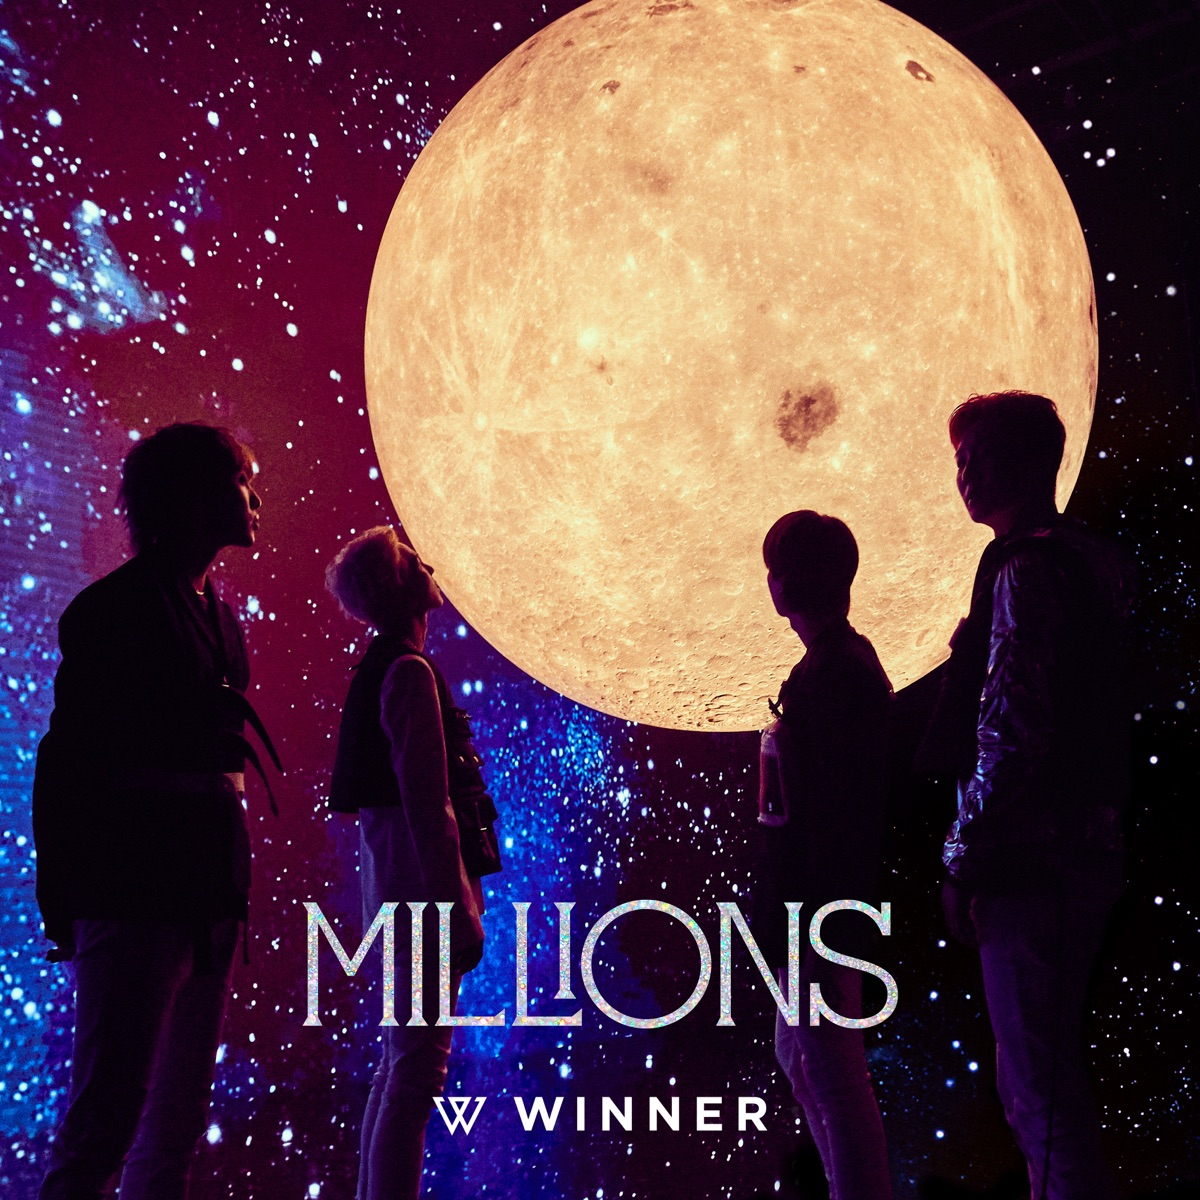 MILLIONS - Single WINNER CD cover